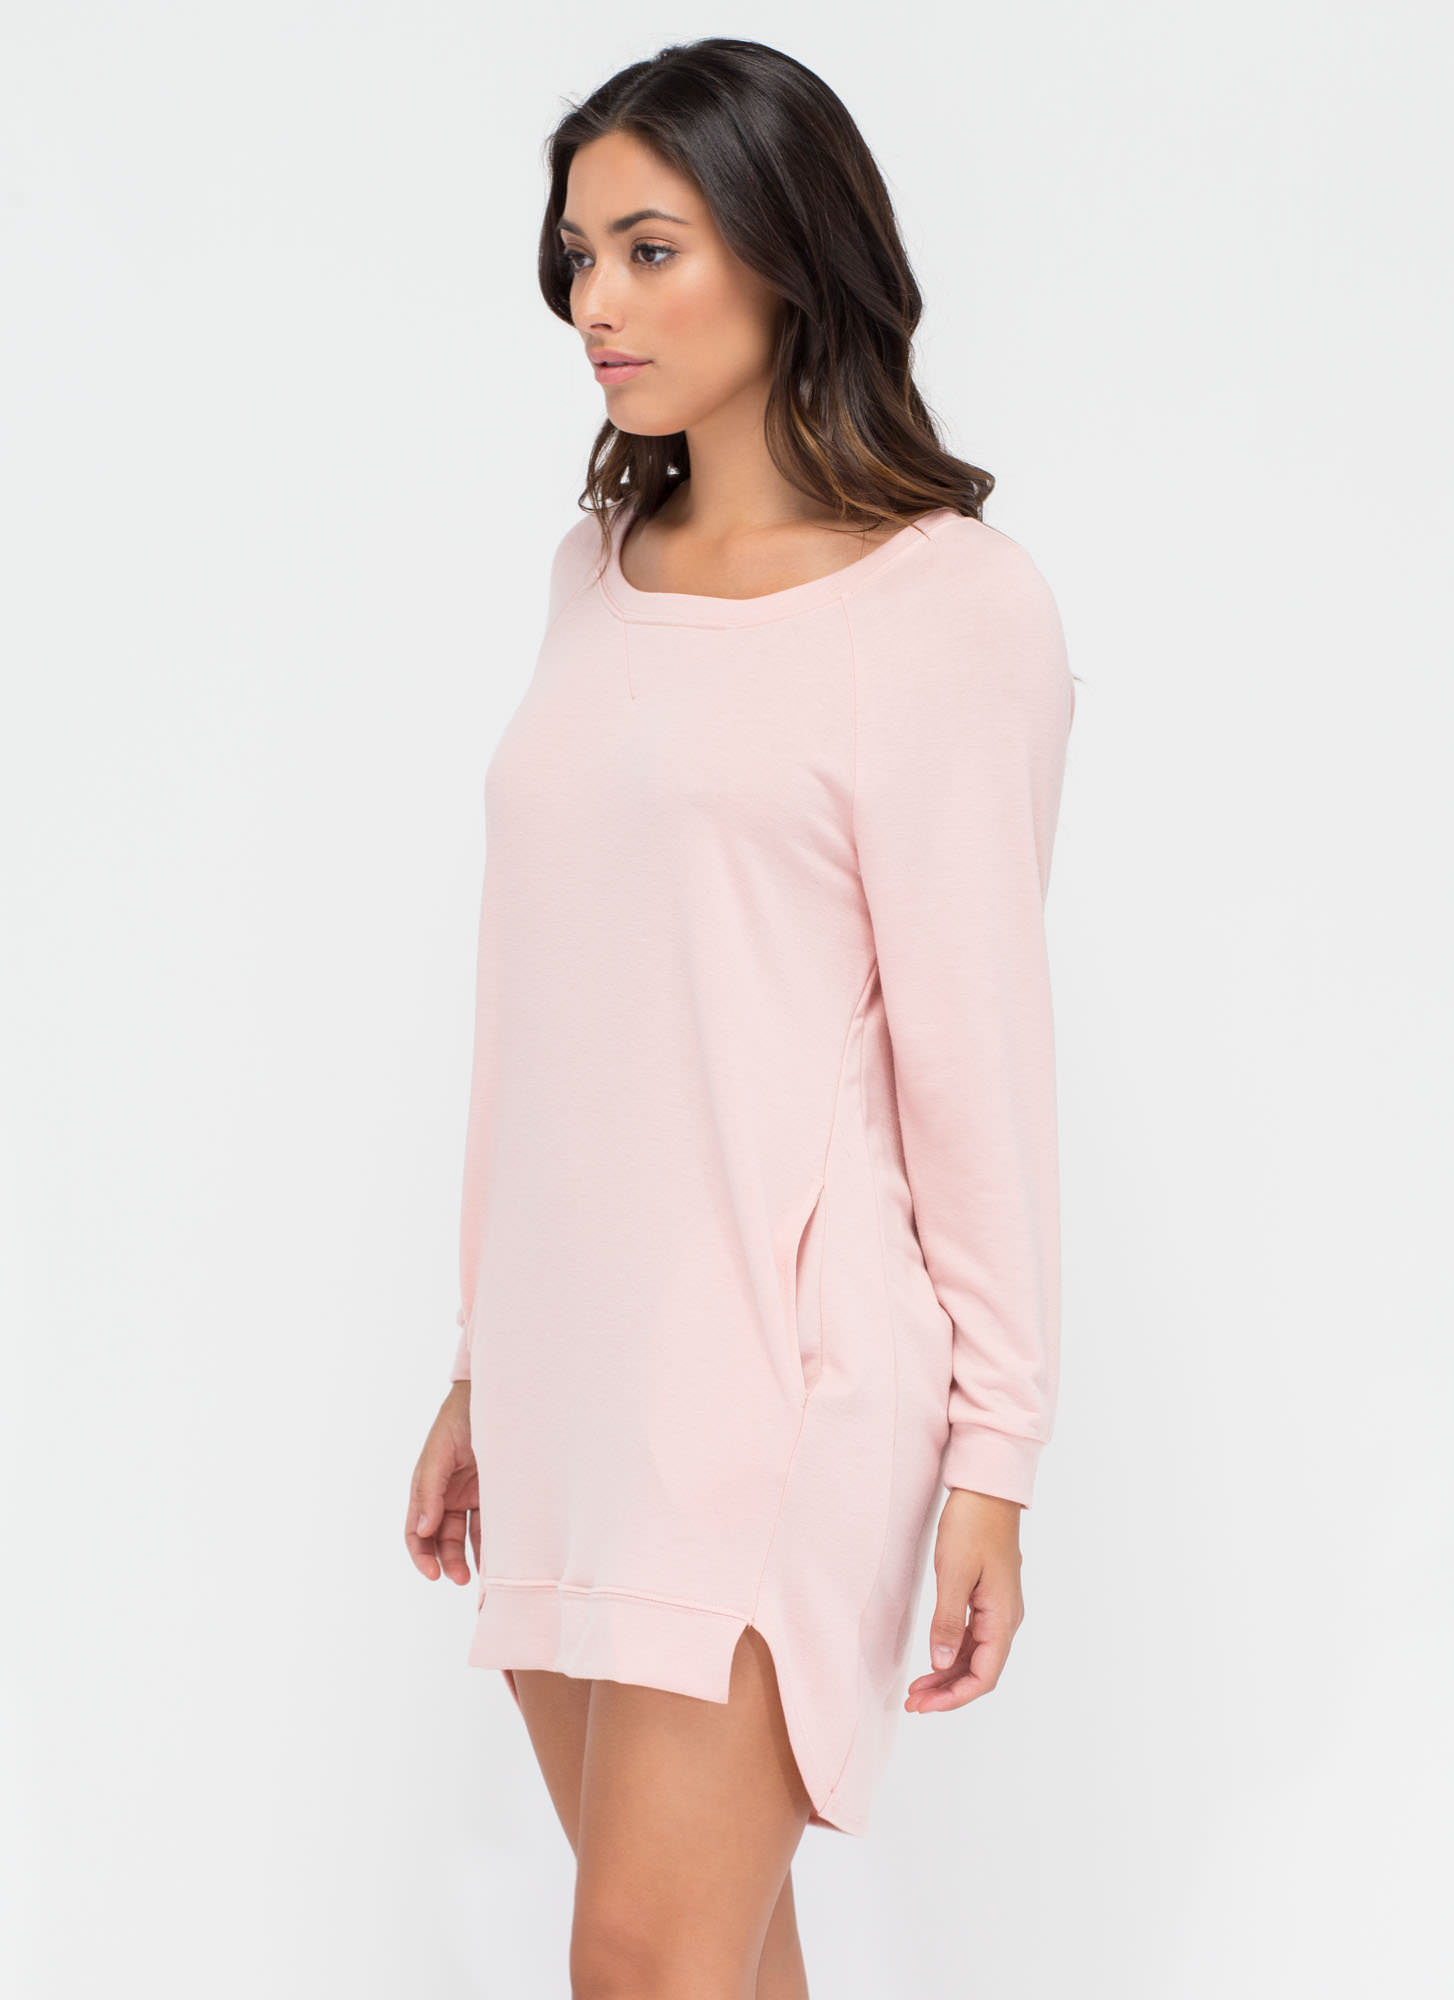 Lazy Sundays Cut-Out Sweatshirt Dress BLUSH